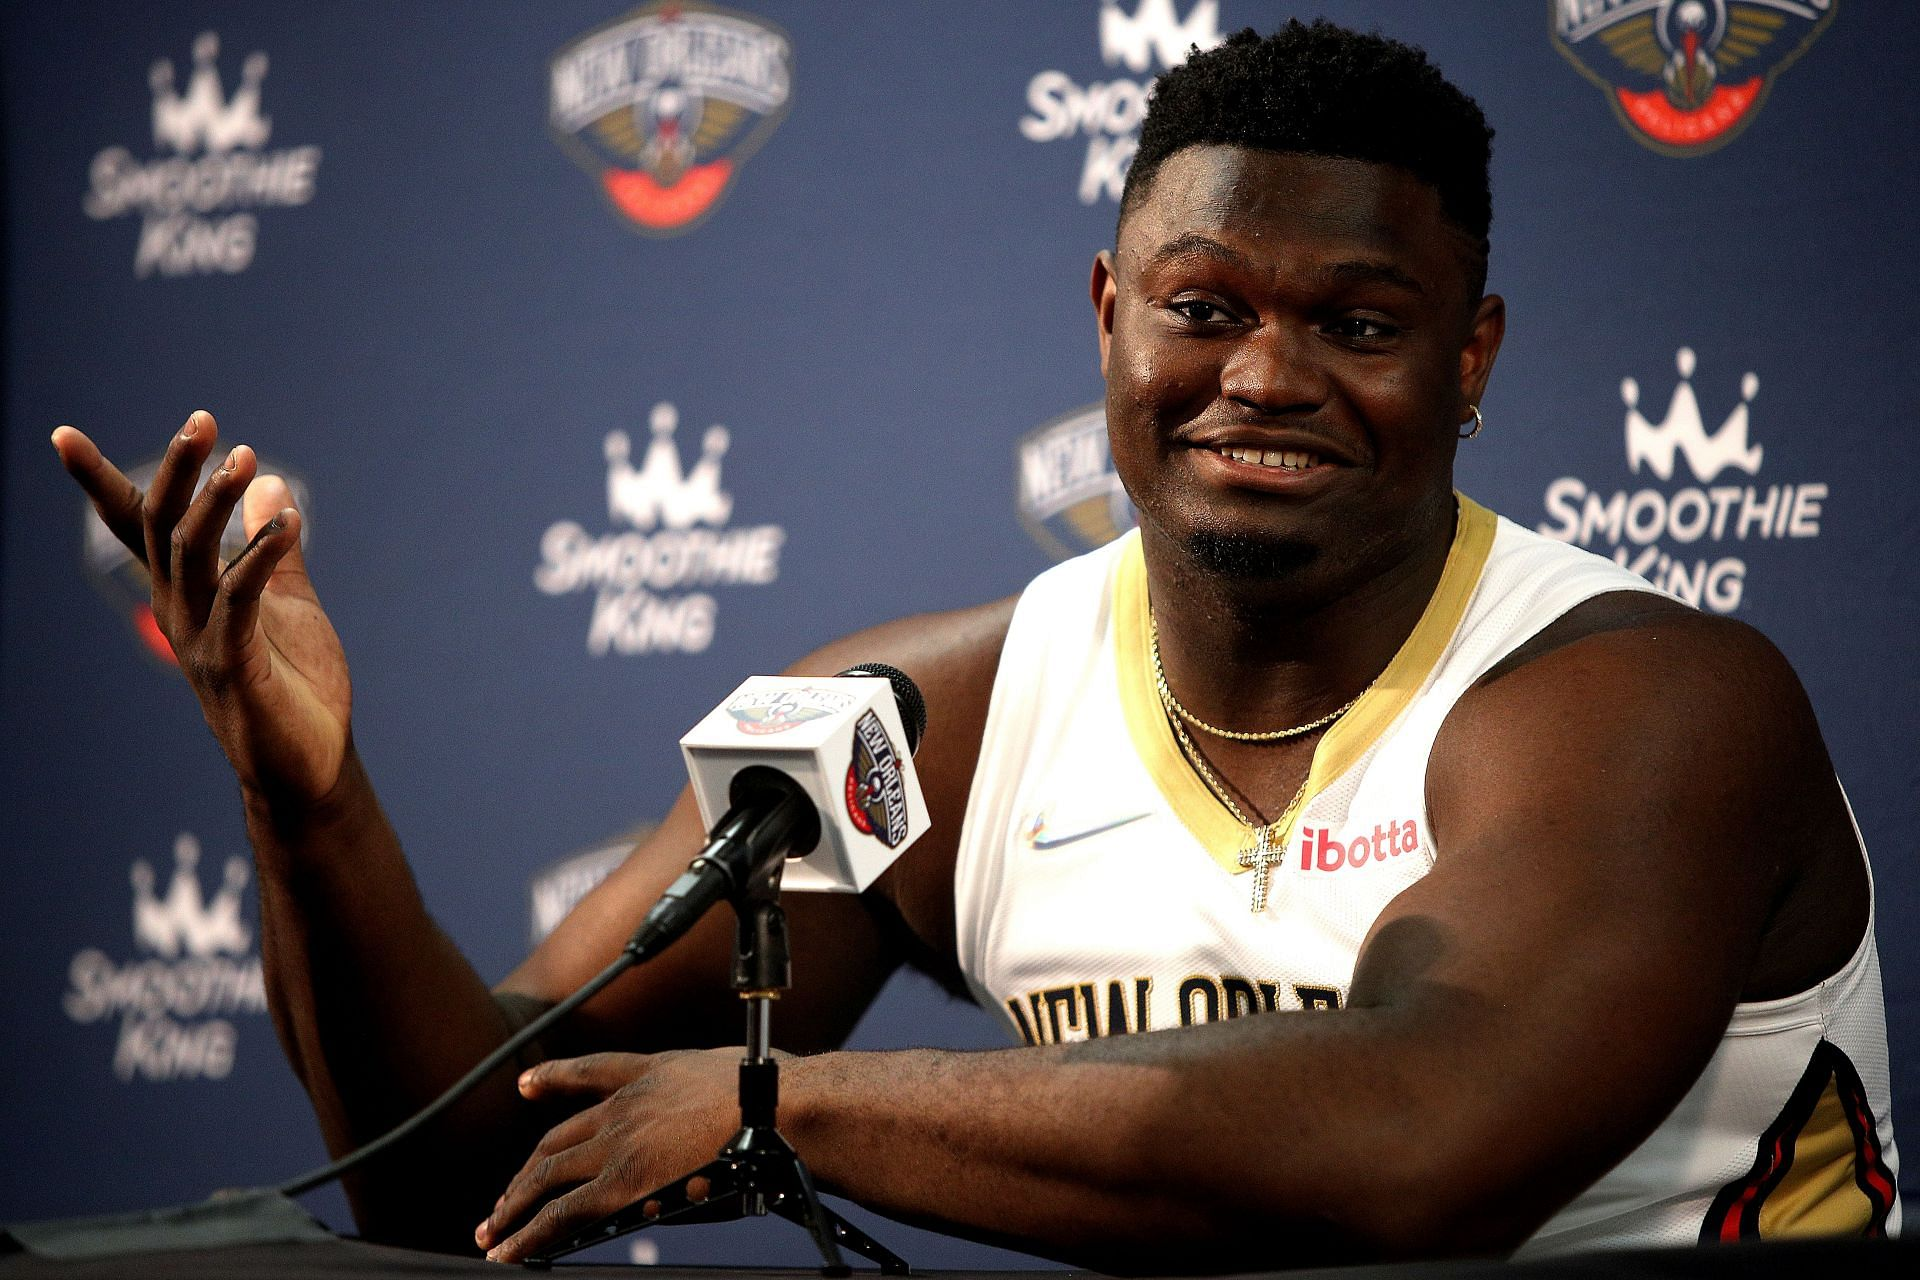 New Orleans Pelicans All-Star Zion Williamson